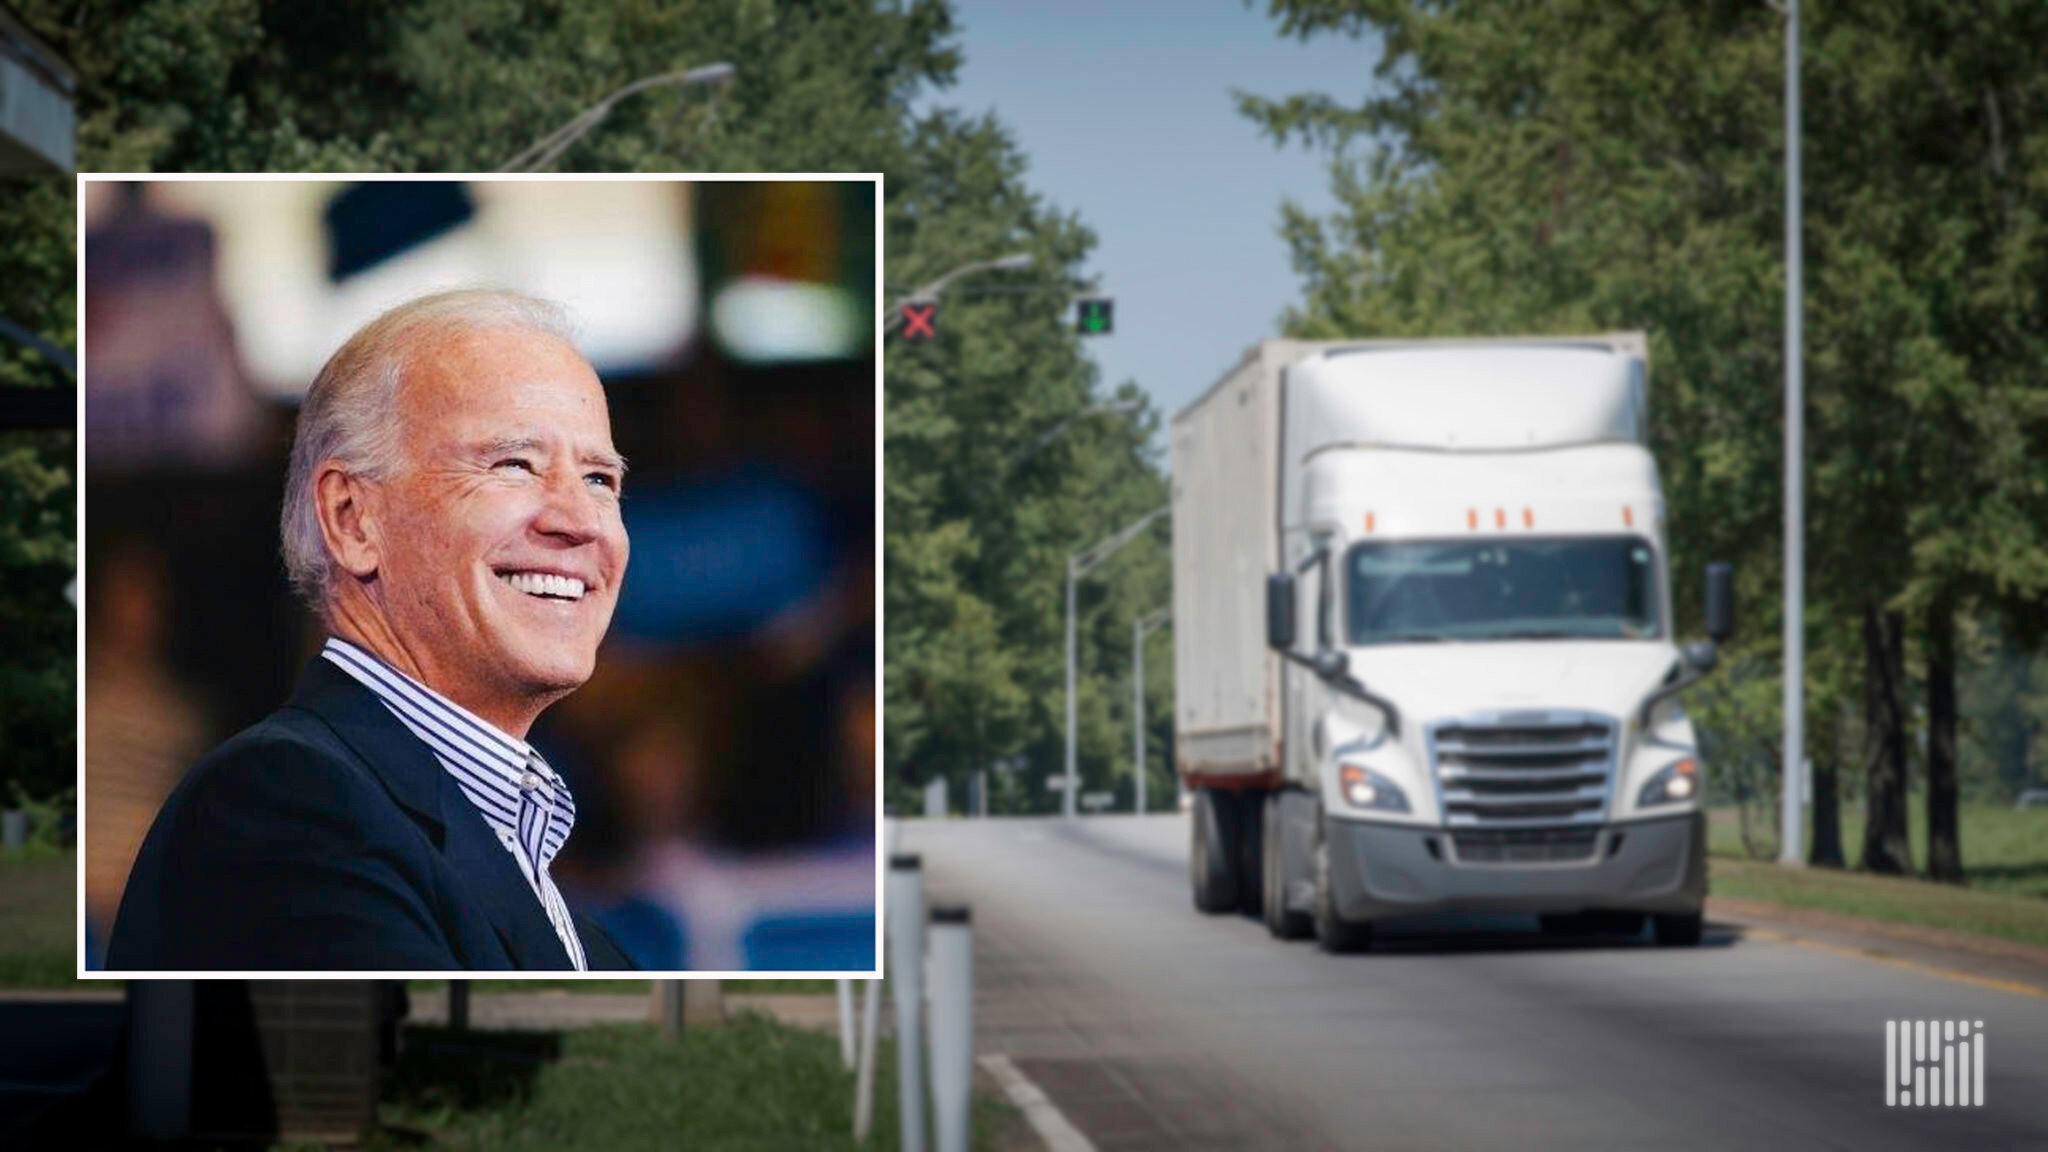 The Truckload Carriers Association will host a webinar on Tuesday to help truckload fleets understand current and potential regulations and other industry issues under the Biden administration. (Photo: Jim Allen/FreightWaves)